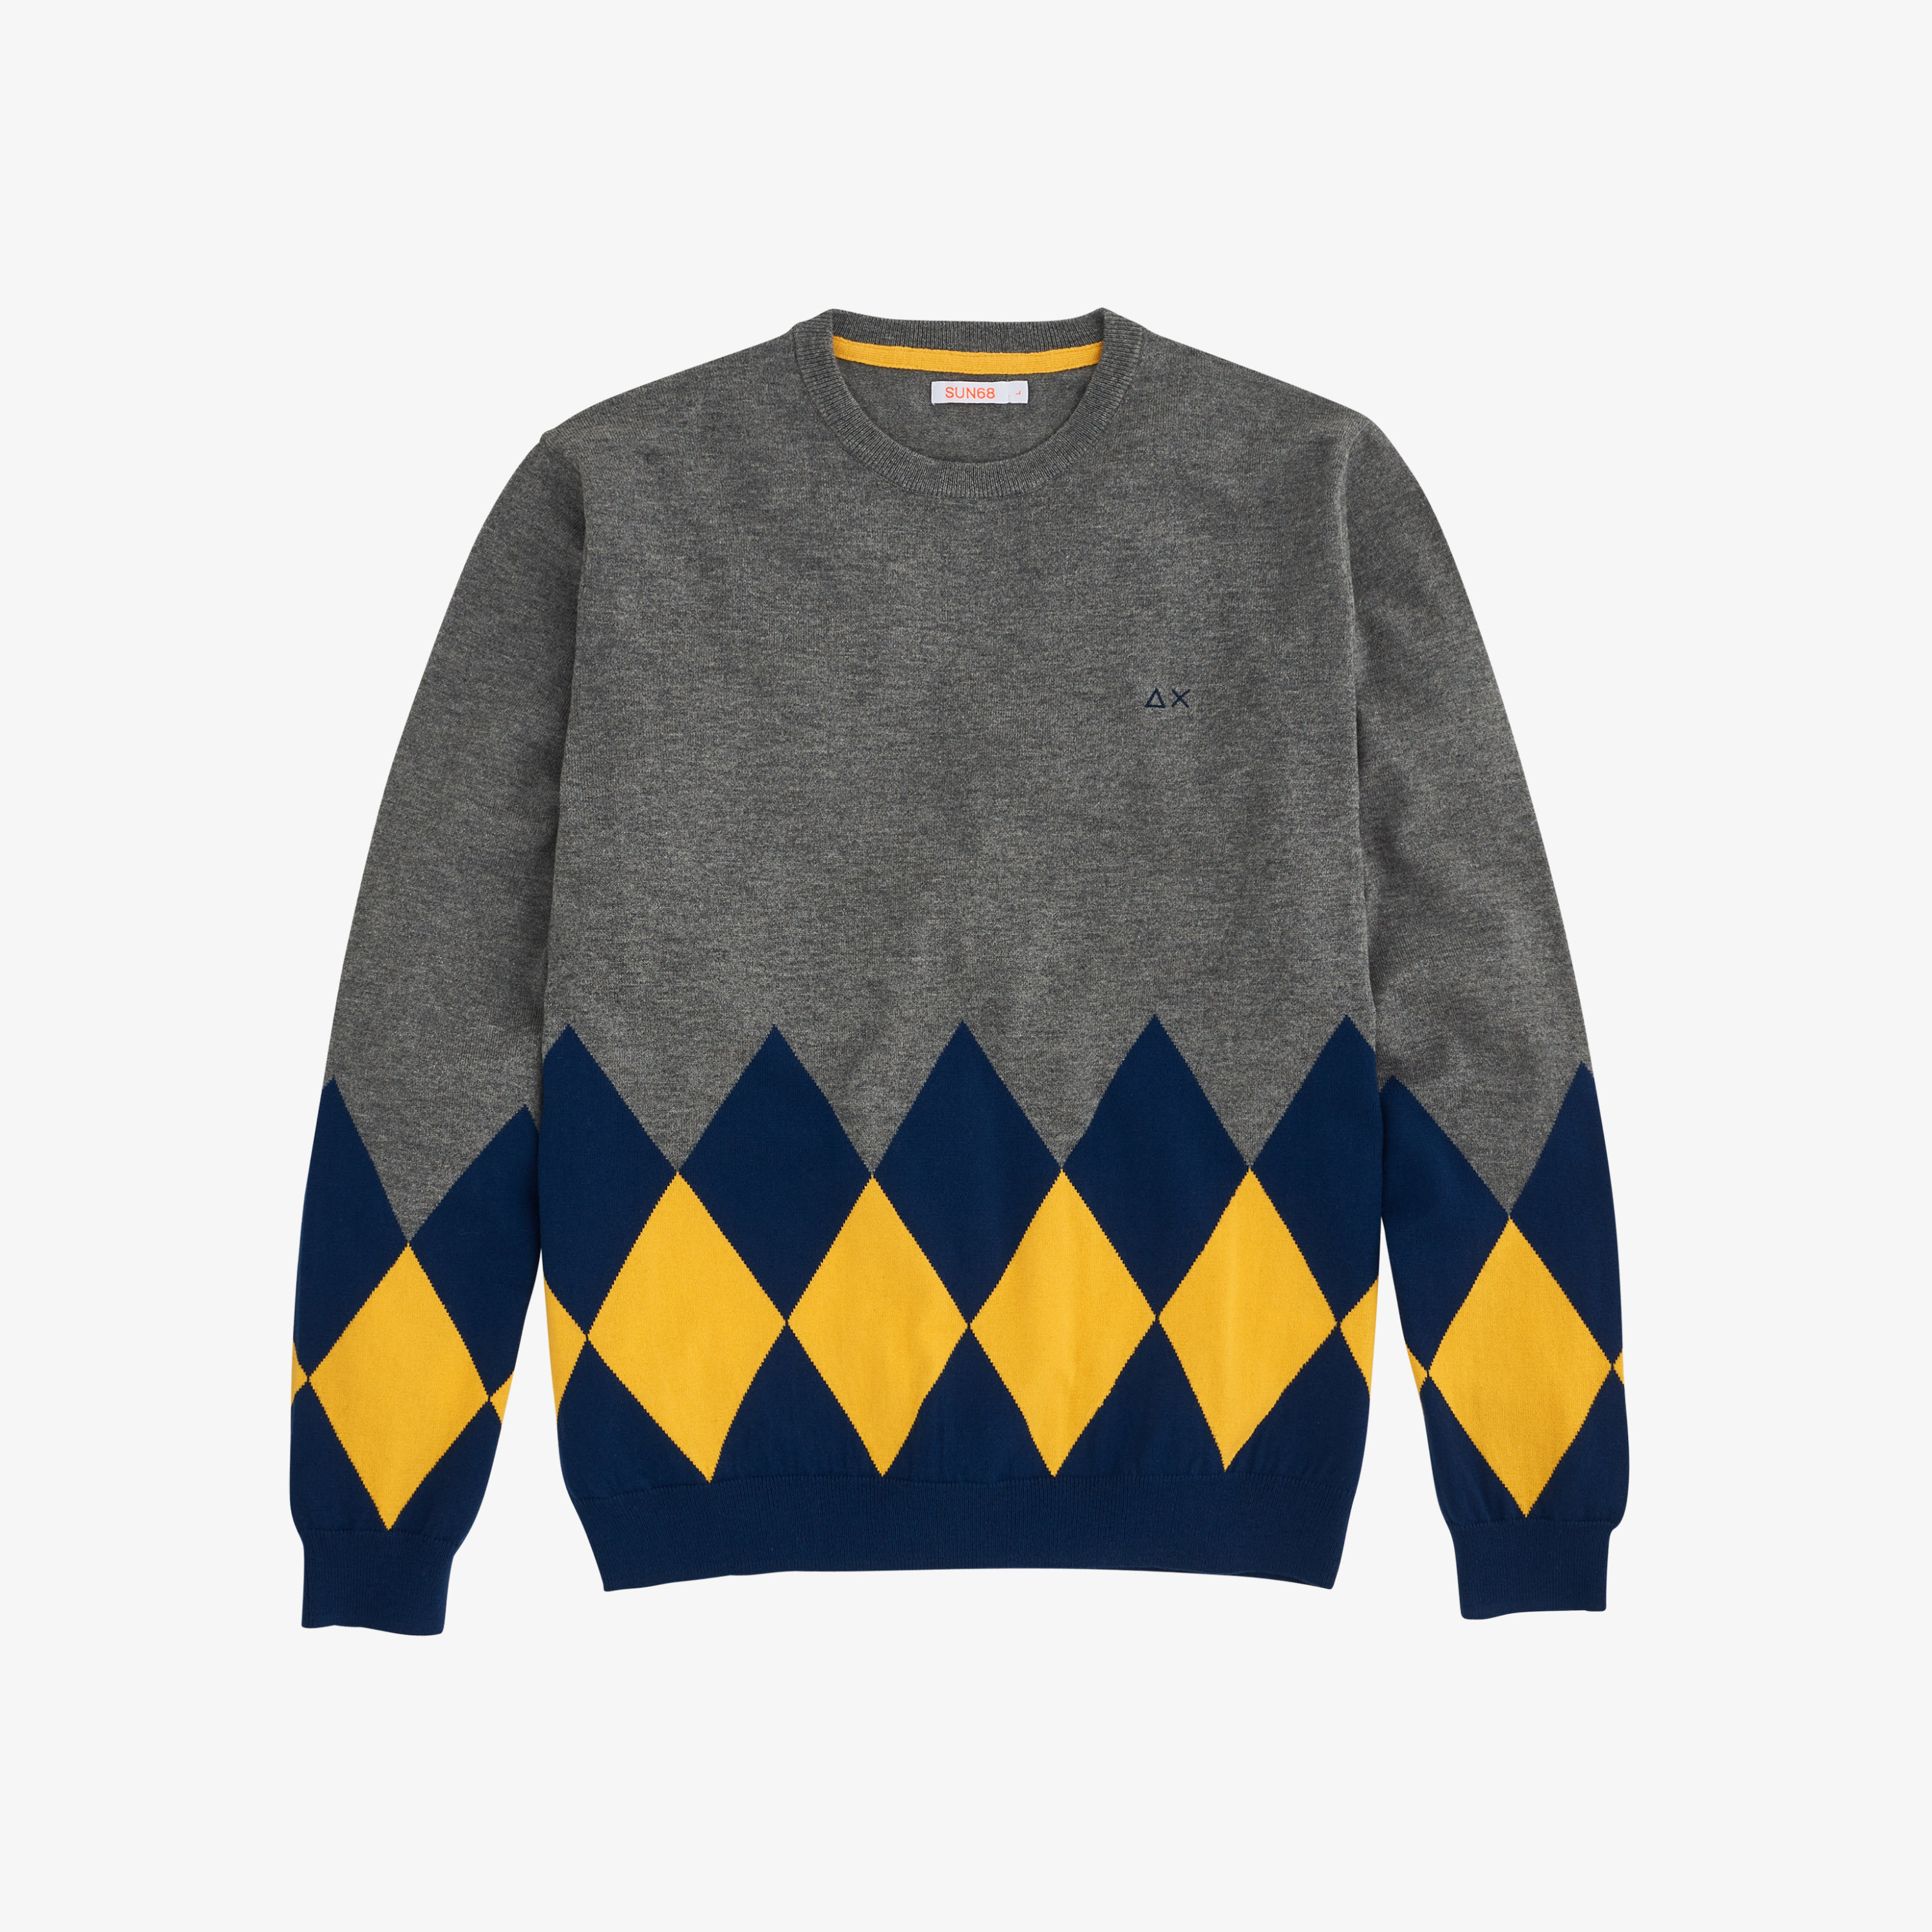 ROUND ARGYLE MEDIUM GREY